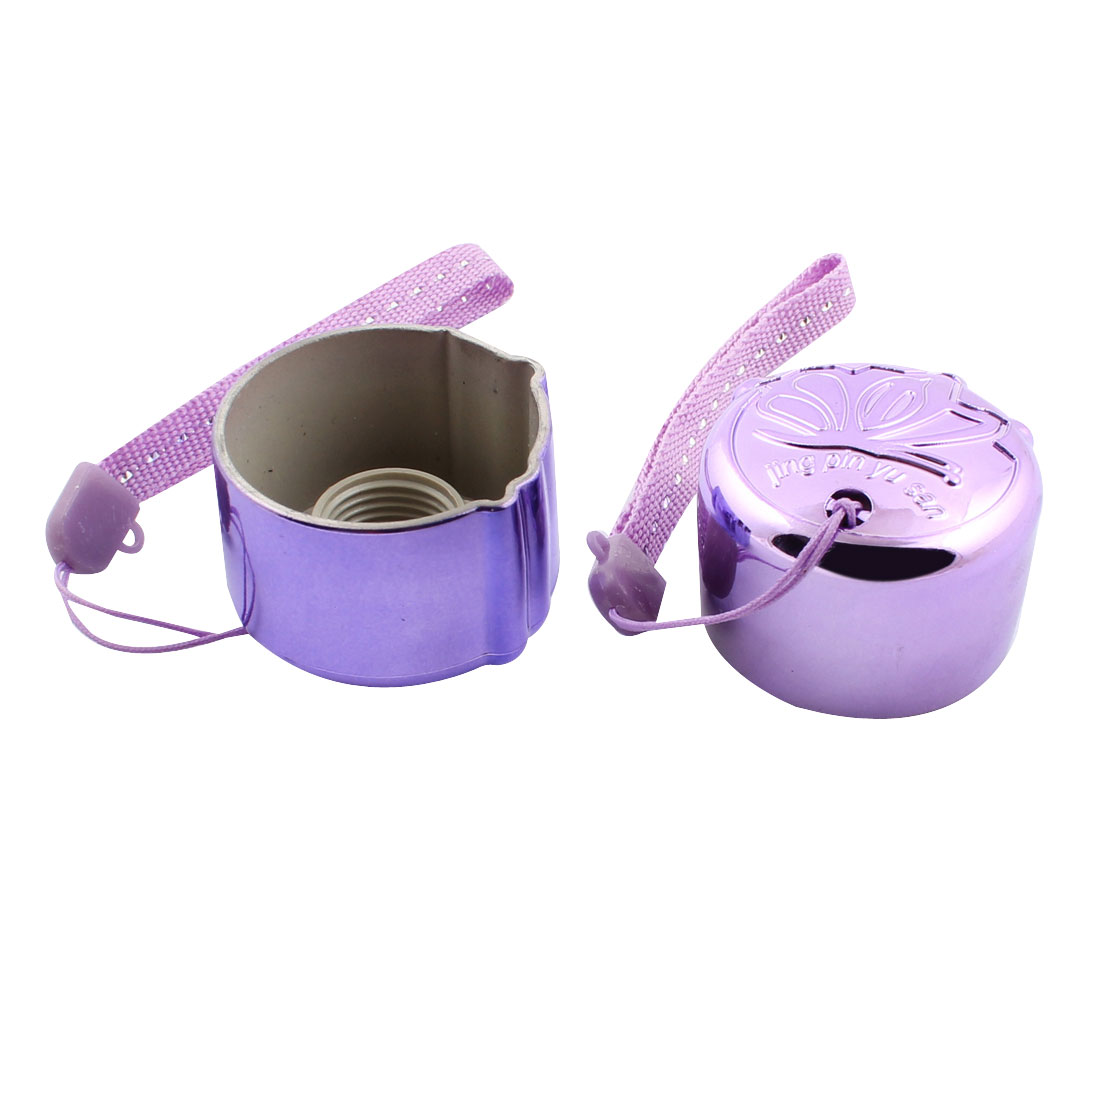 Wrist Strap 15mm Dia Thread Hole Plastic Round Head Umbrella Handle Purple 2pcs